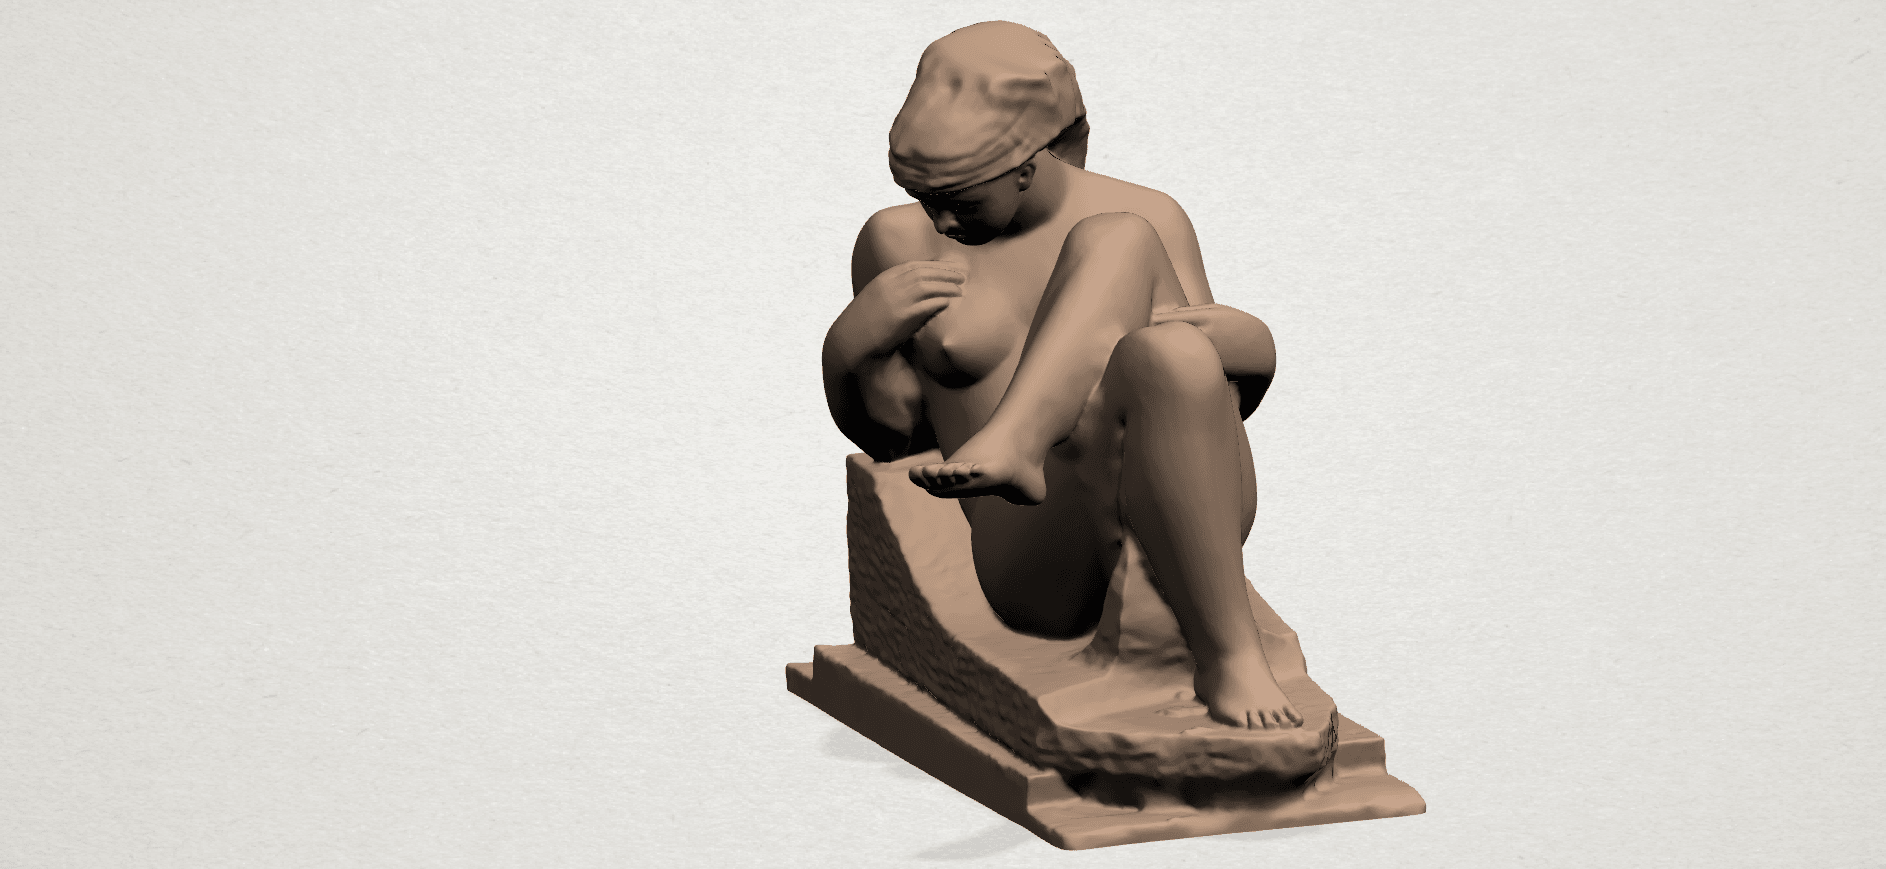 Naked Girl (xiii) A02.png Download free STL file Naked Girl 13 • 3D print design, GeorgesNikkei